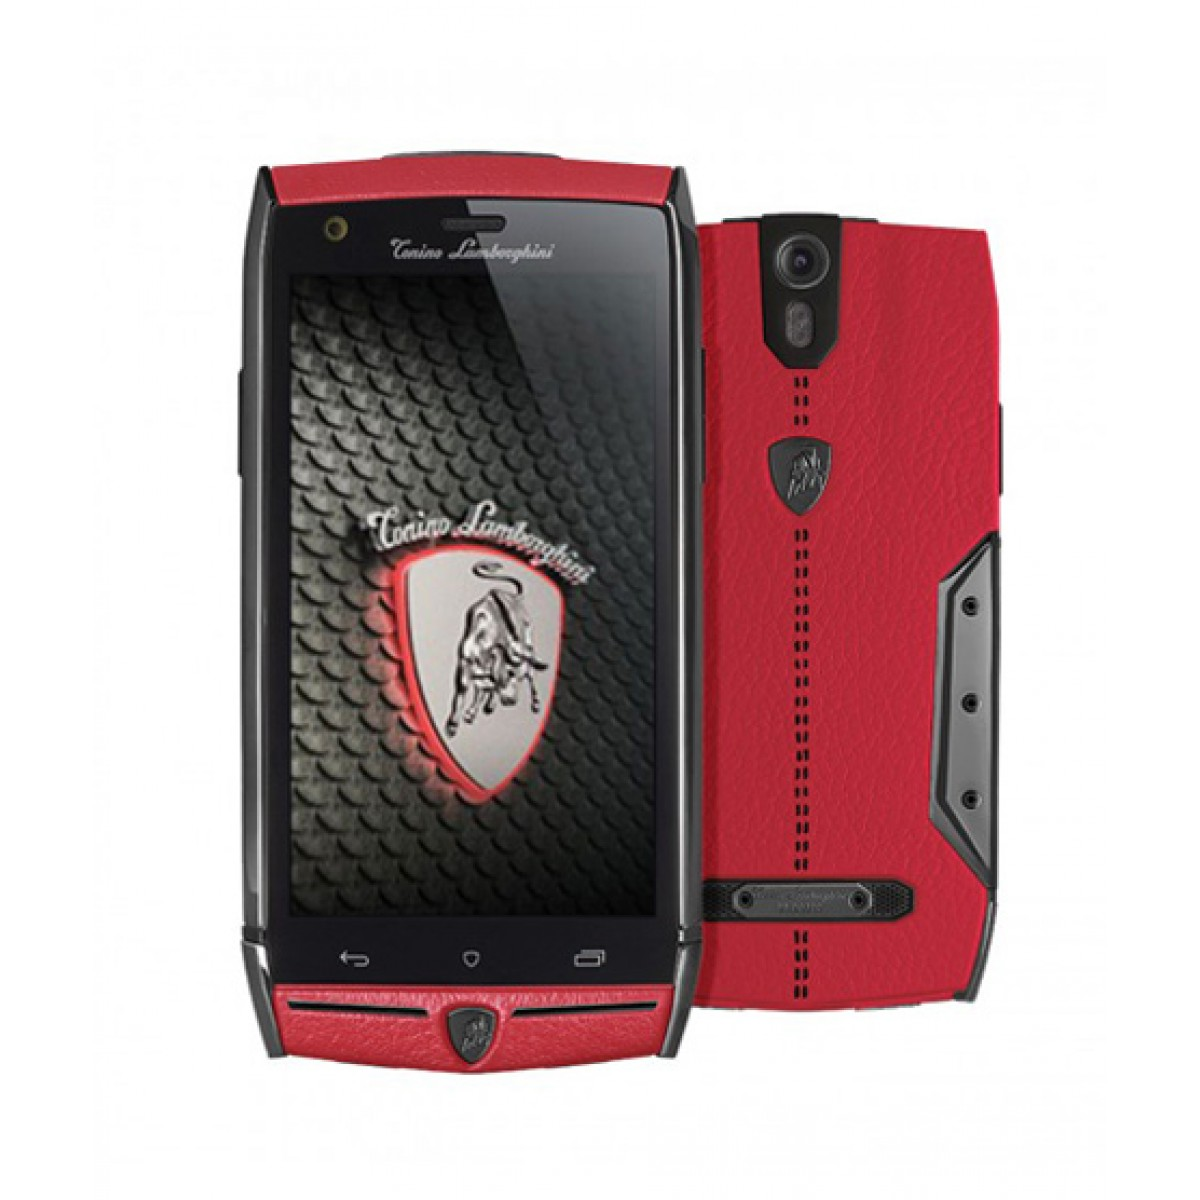 Lamborghini 88 Tauri 64gb Black Red Price In Pakistan Buy